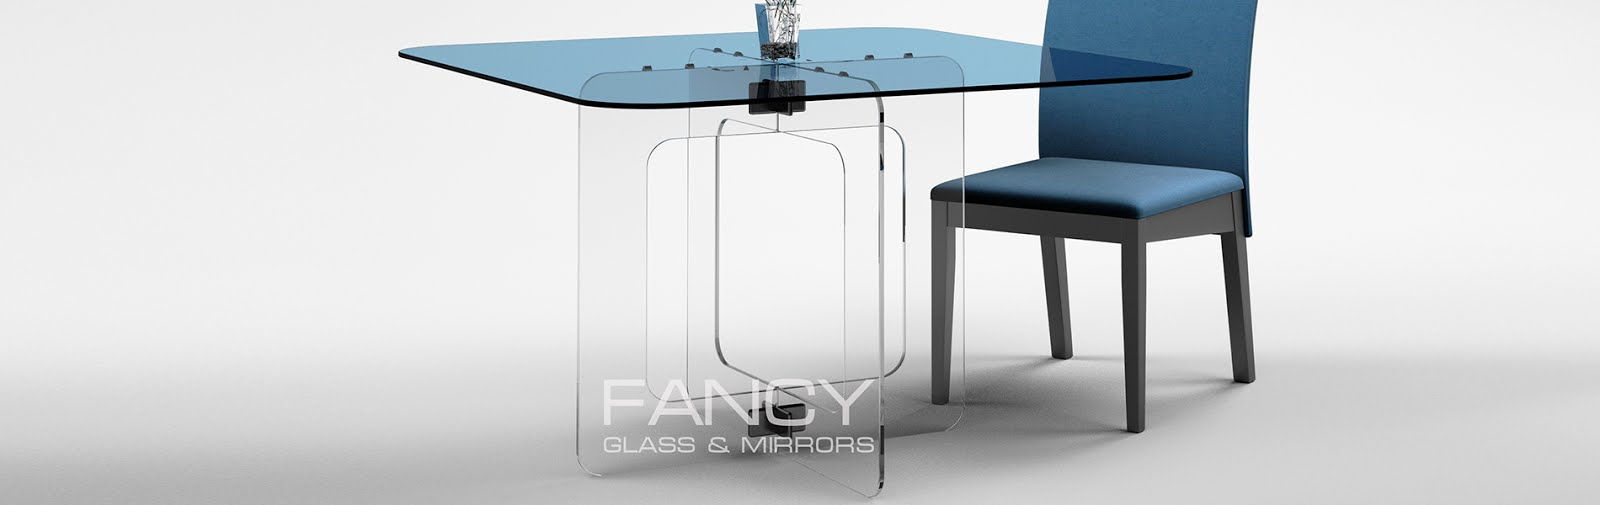 Square dining table with rounded corners